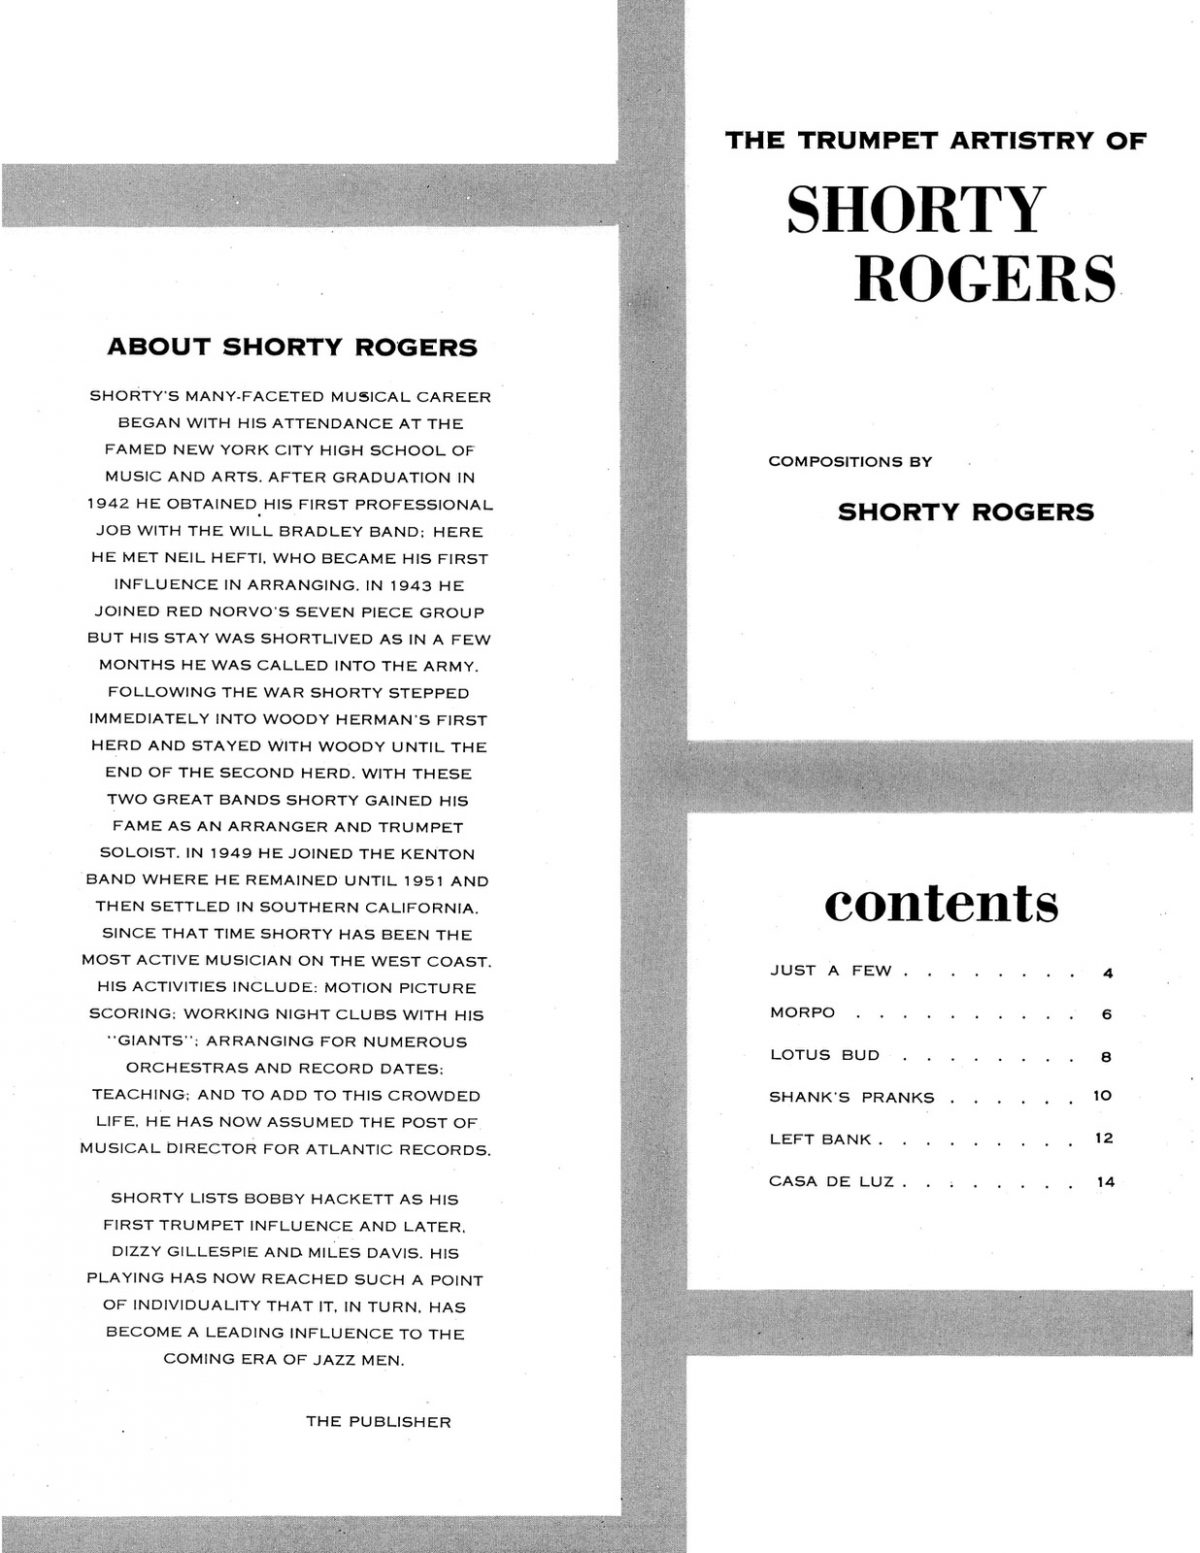 Rogers, The Trumpet Artistry of Shorty Rogers